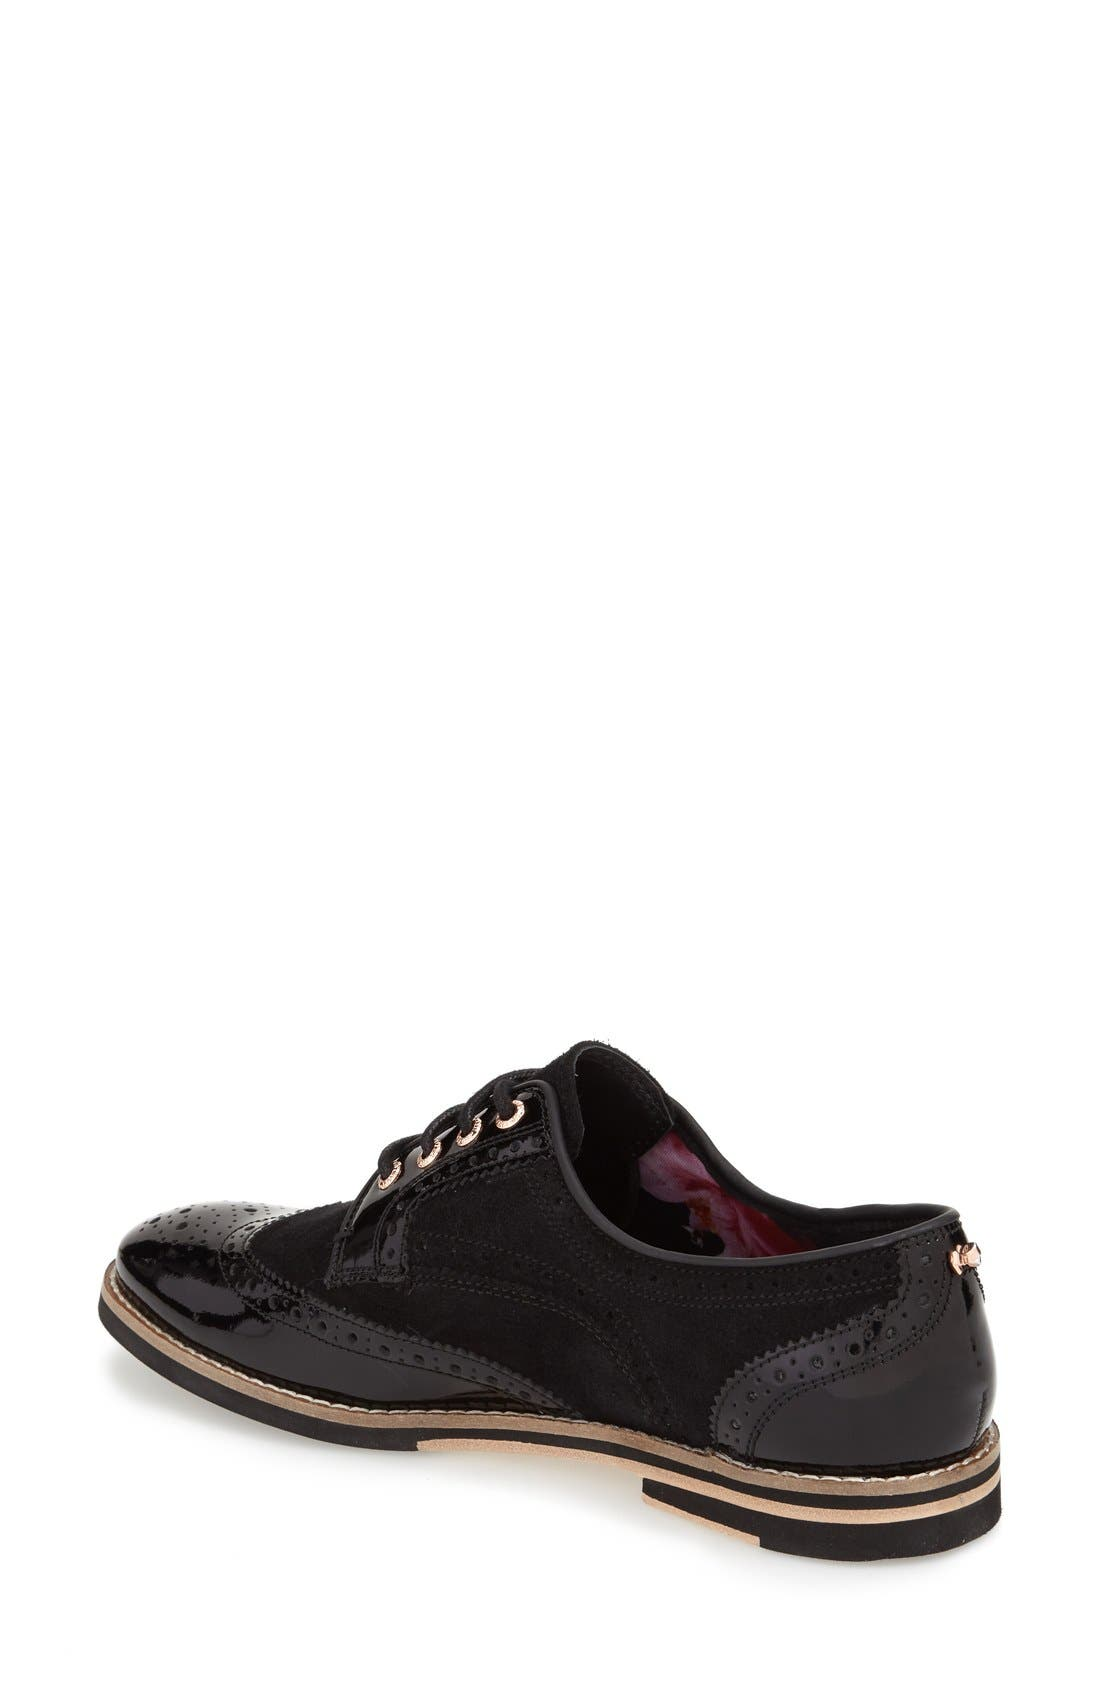 TED BAKER LONDON,                             'Anoihe' Oxford,                             Alternate thumbnail 3, color,                             015